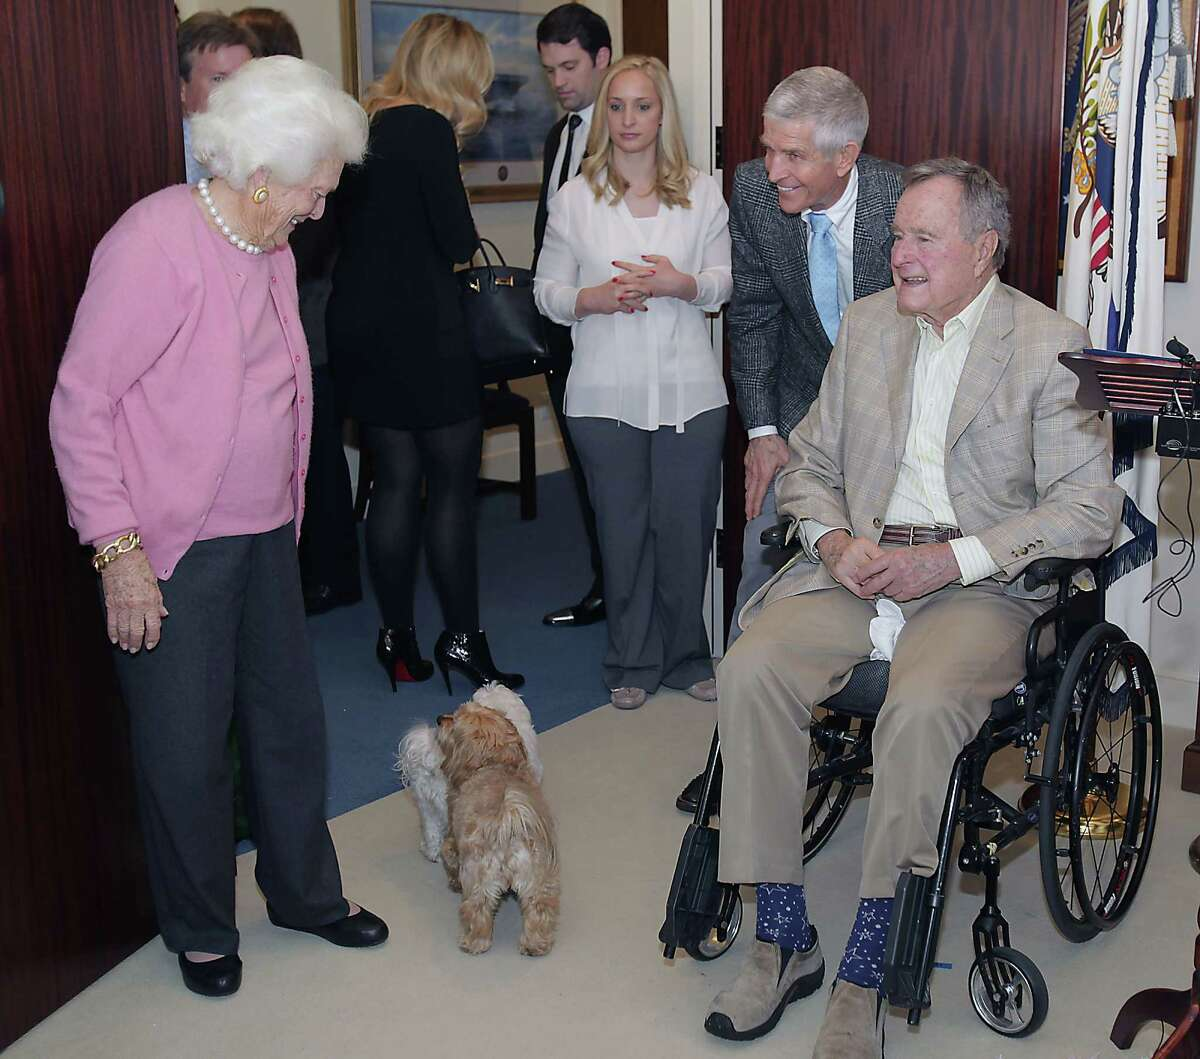 Former First Lady Barbara Bush left, Jim McIngvale and Former President George H. W. Bush, after a ceremony presenting the 5115th Daily Point of Light (DPOL) Award to McIngvale at President Bush's office Monday, Dec. 23, 2013, in Houston.